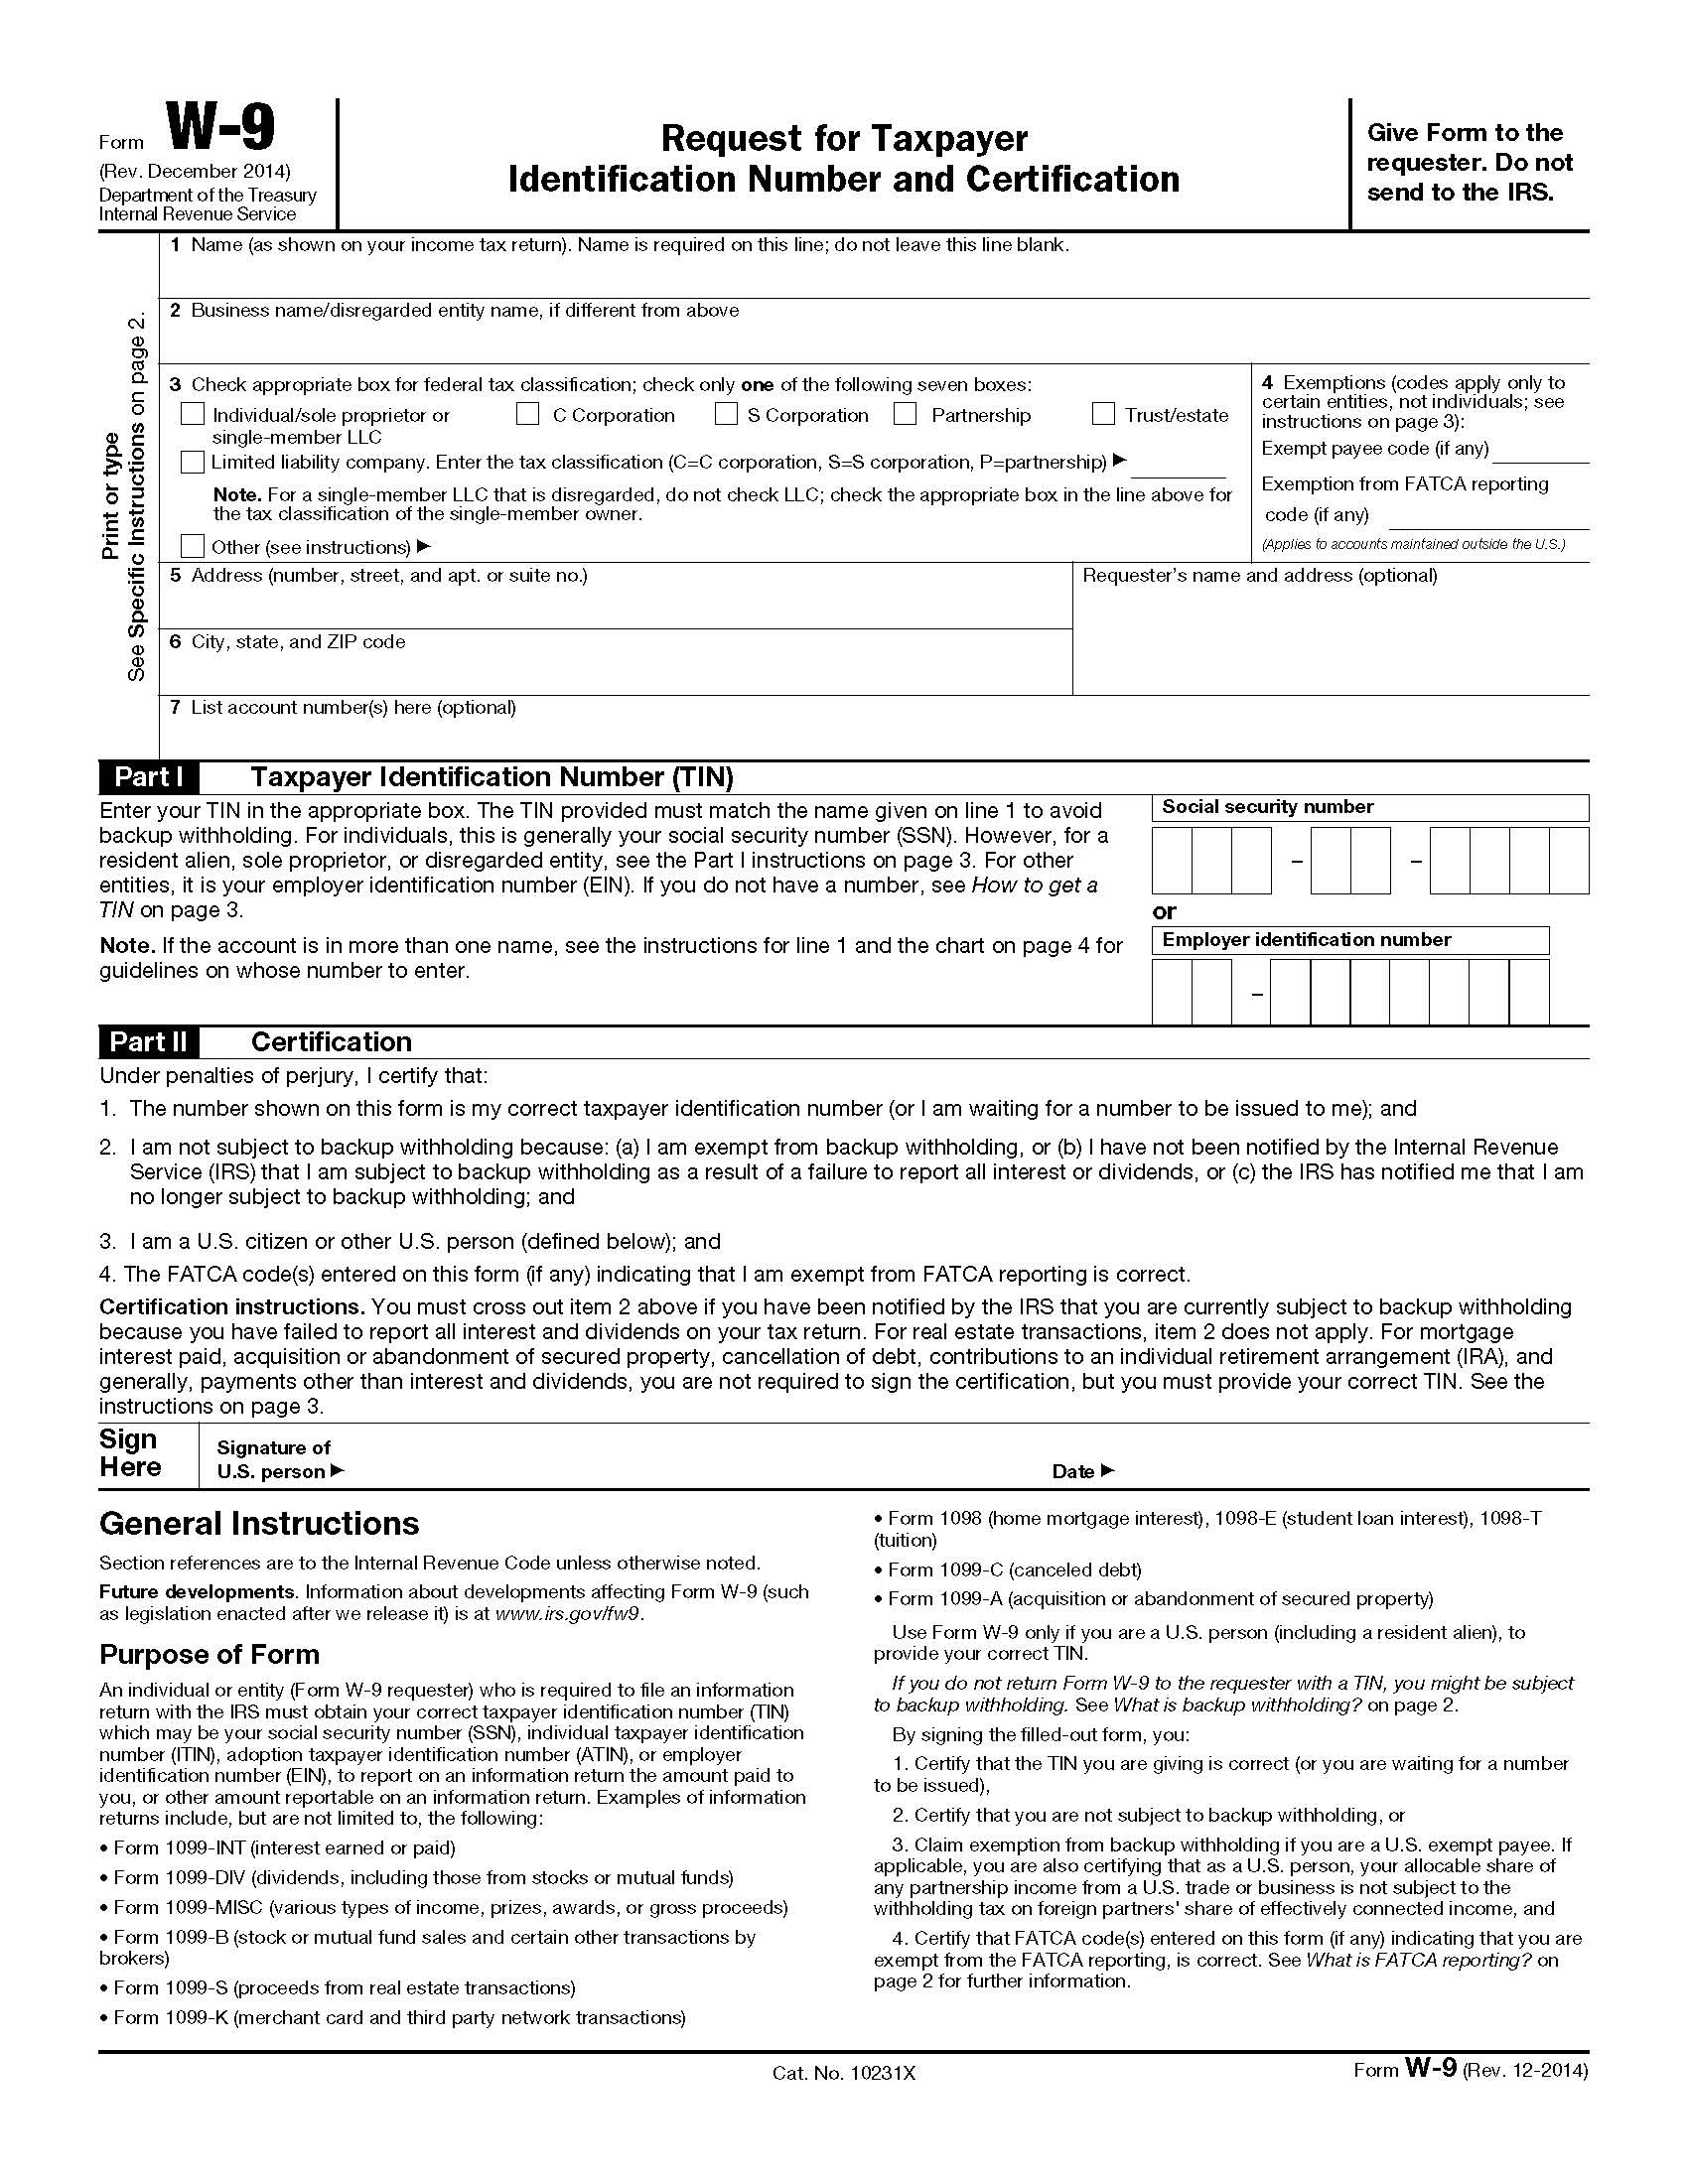 Industrial Raw Materials Llc-Nys W9 Printable Forms For 2021